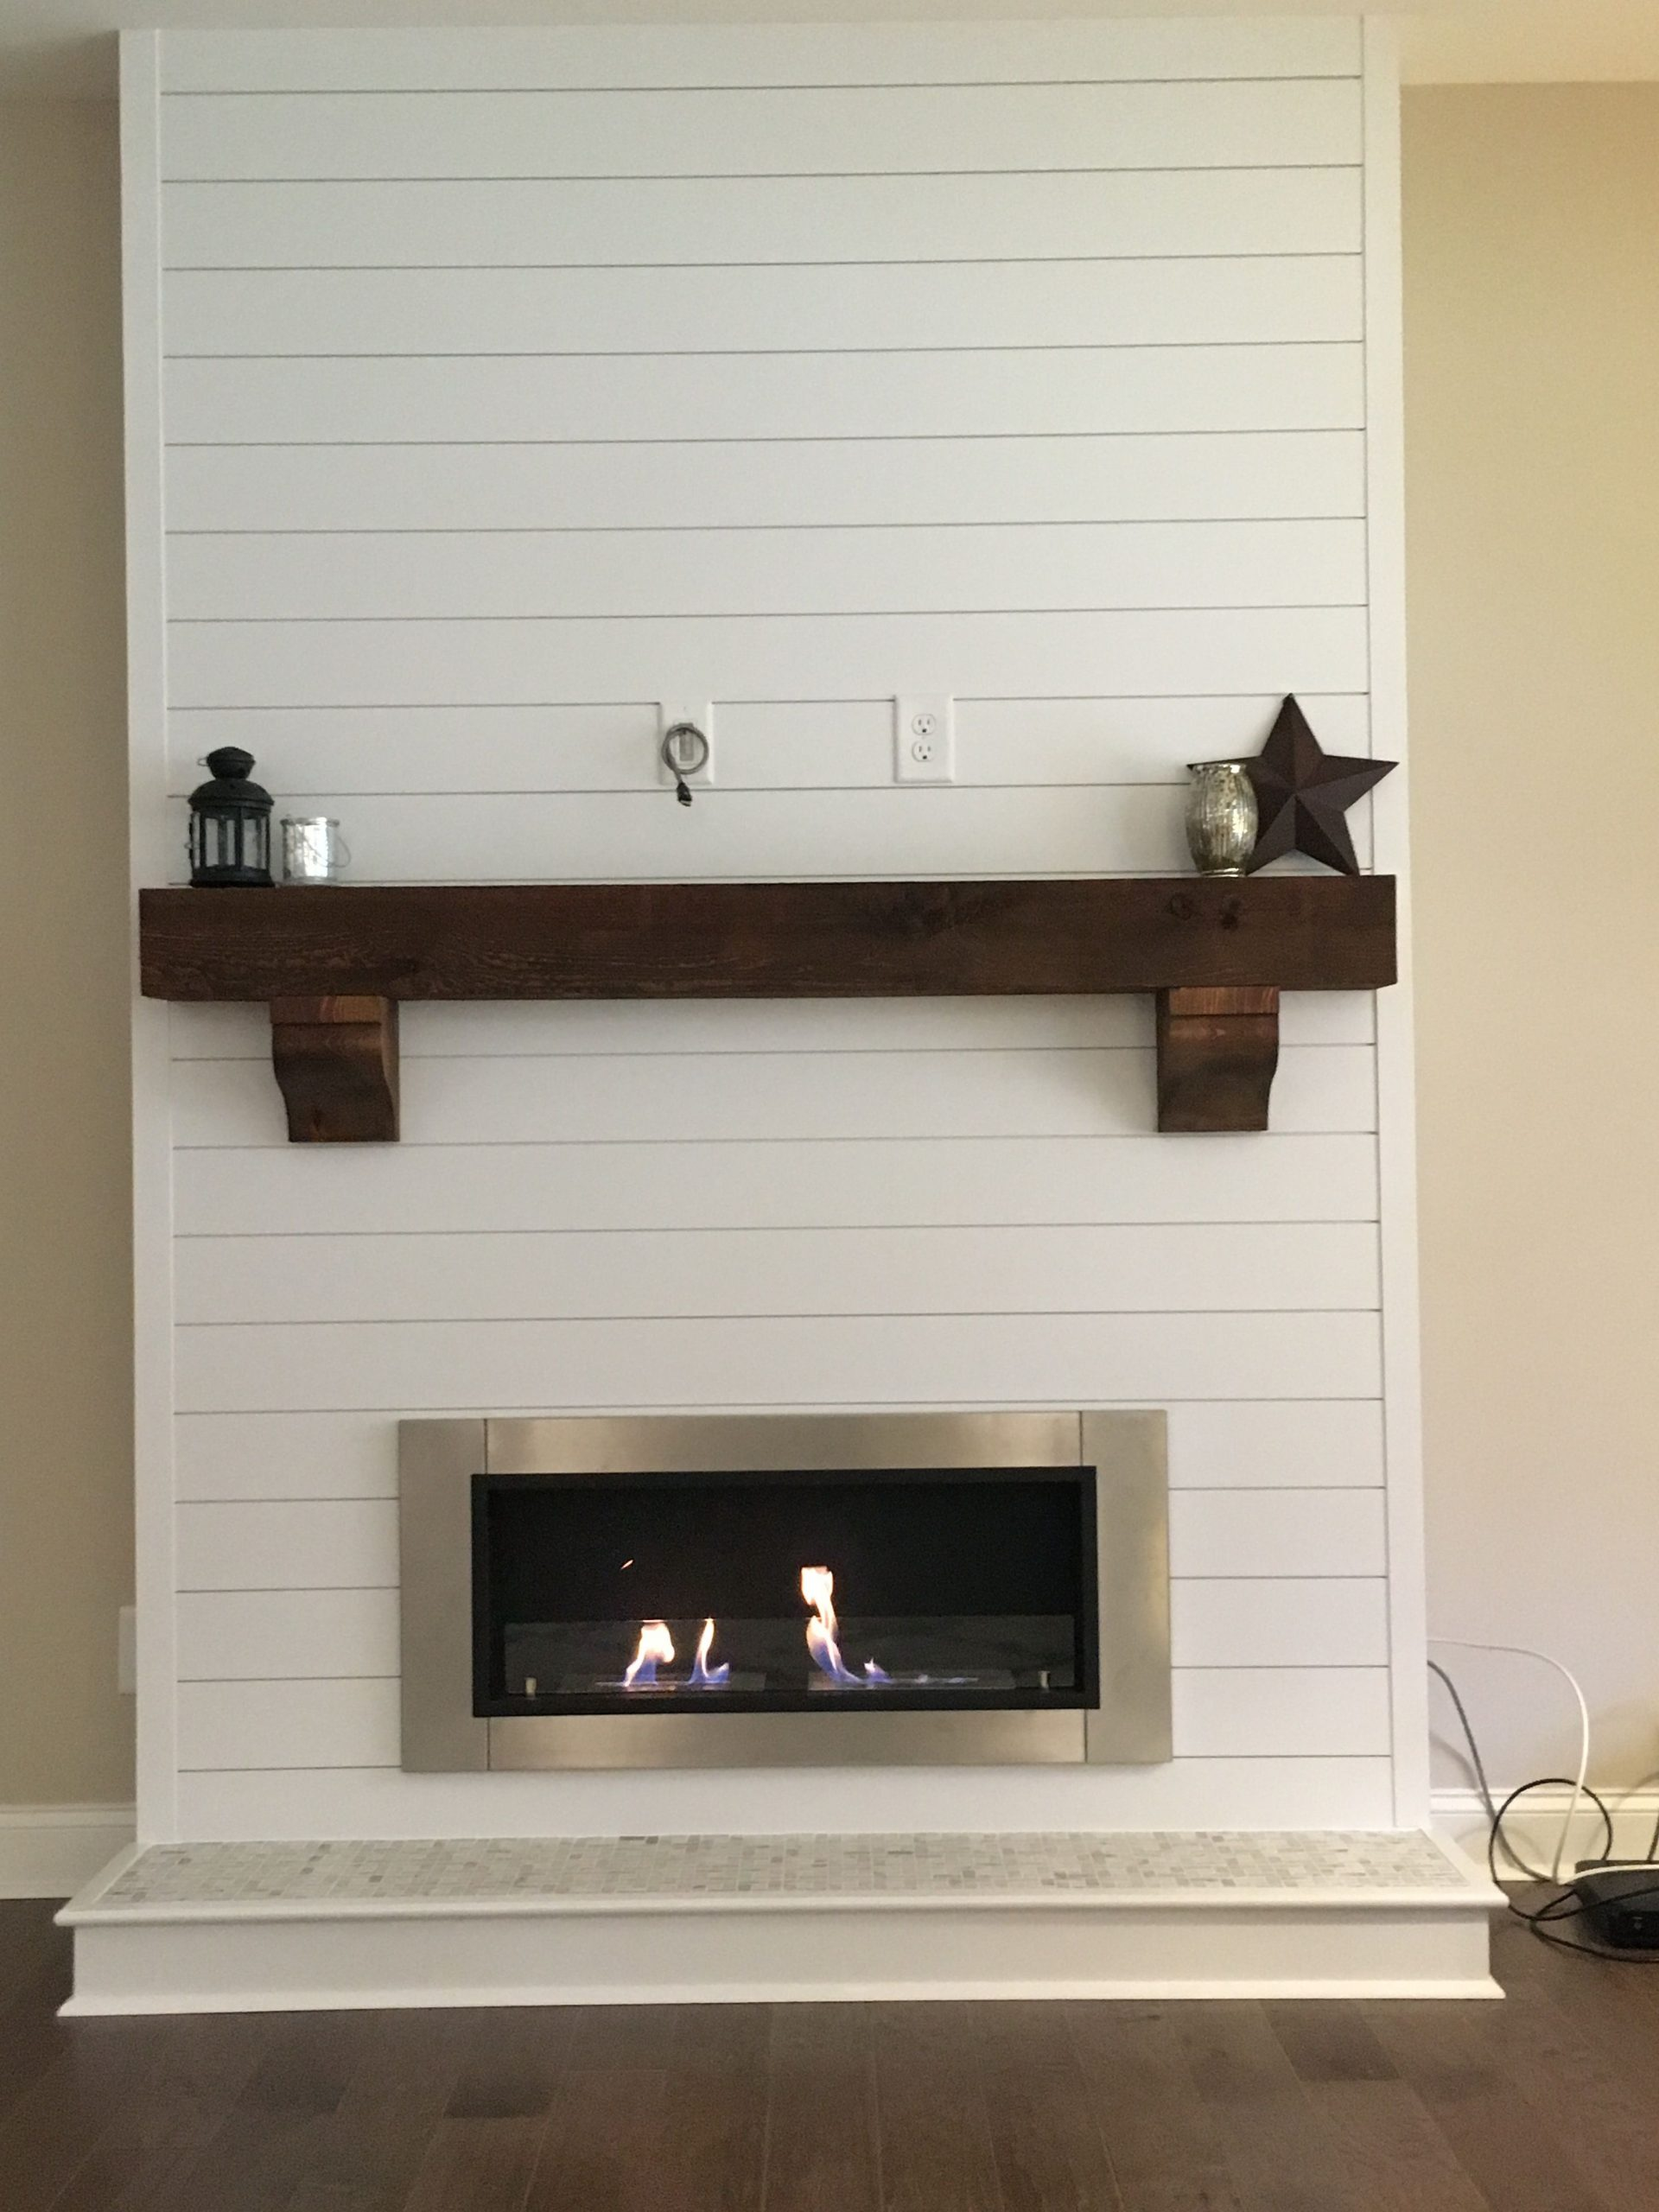 Ethanol Wall Mounted Fireplace Fresh Shiplap Bioethanol Fireplace with Rustic Beam Mantle with